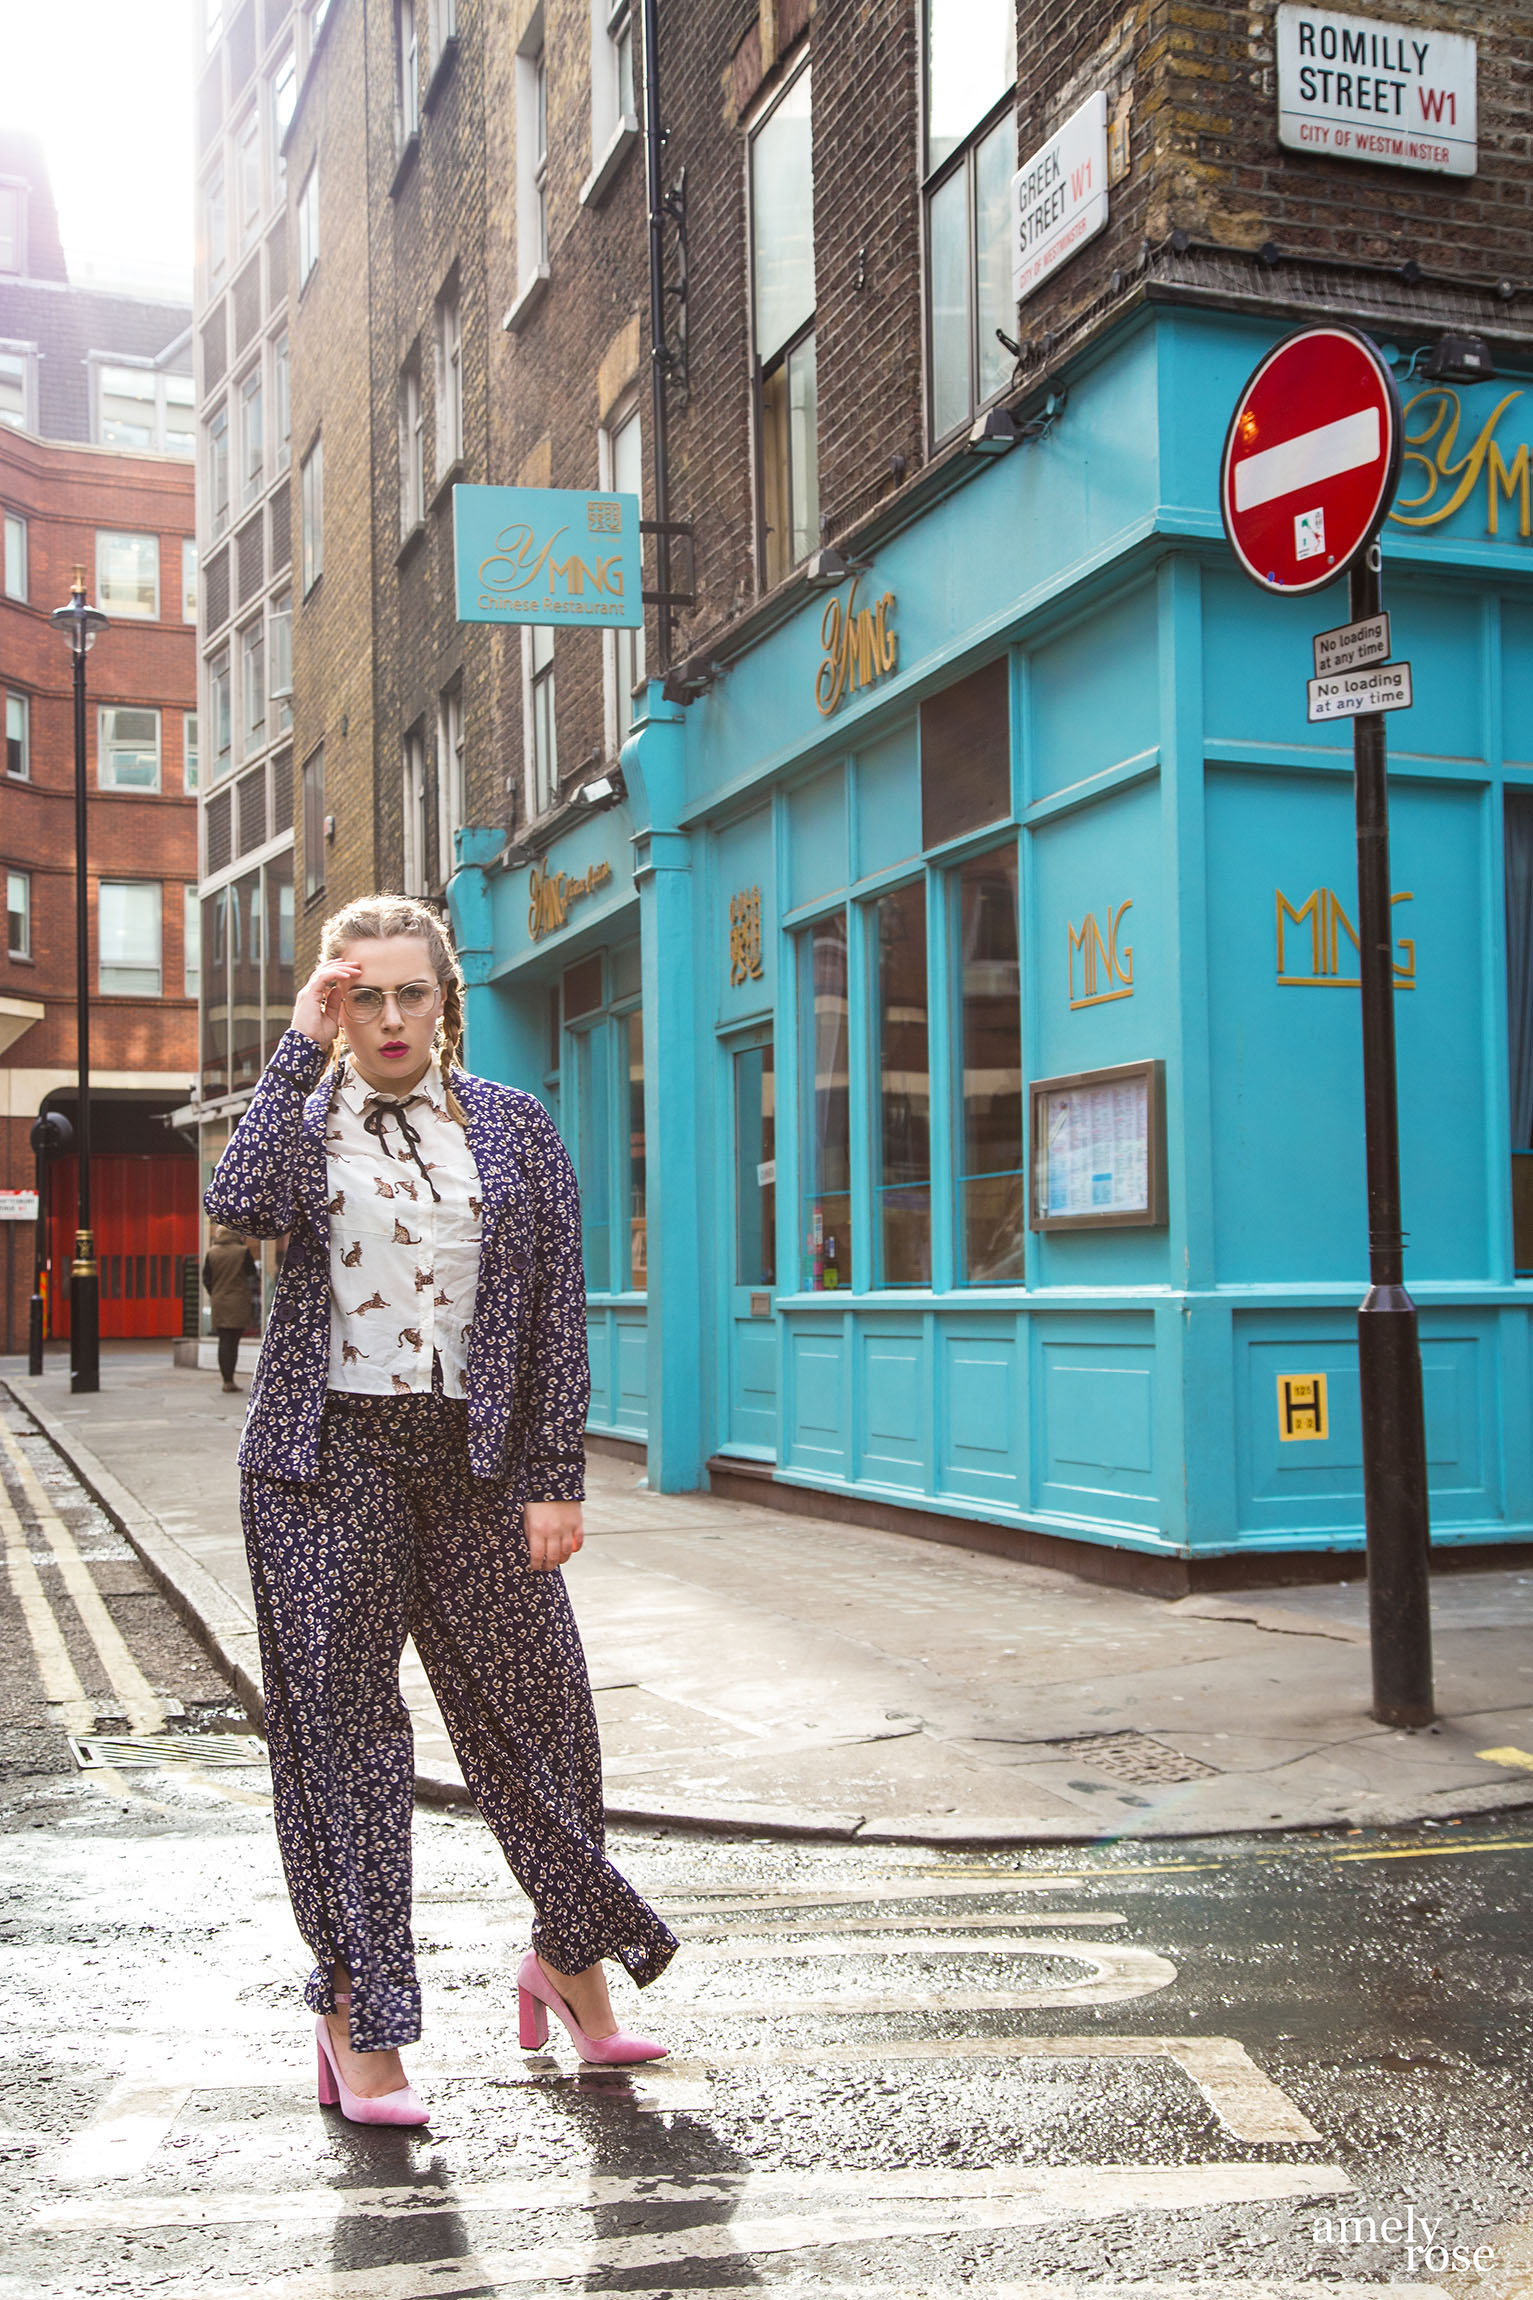 Amely Rose wearing a blue business two piece in London.